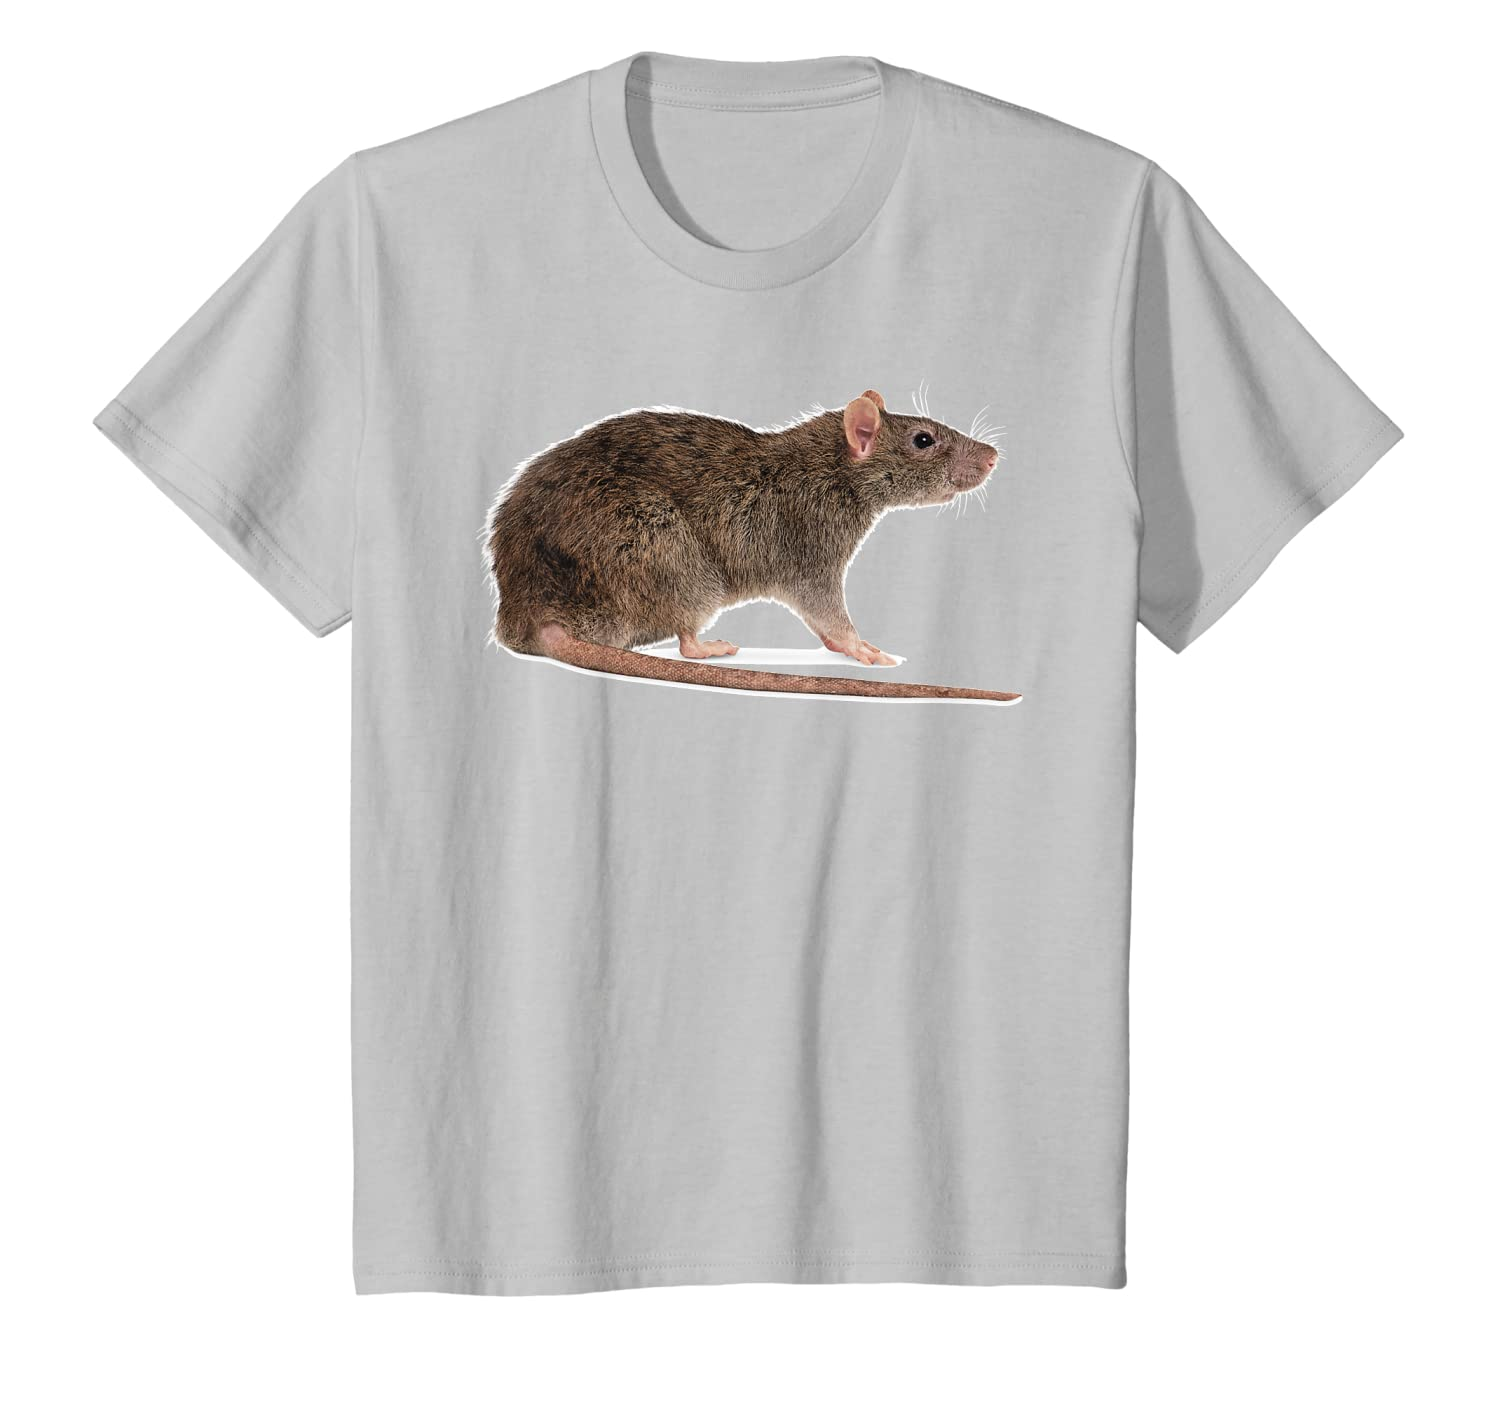 Rat T Shirt Tshirt for men women boys girls kids